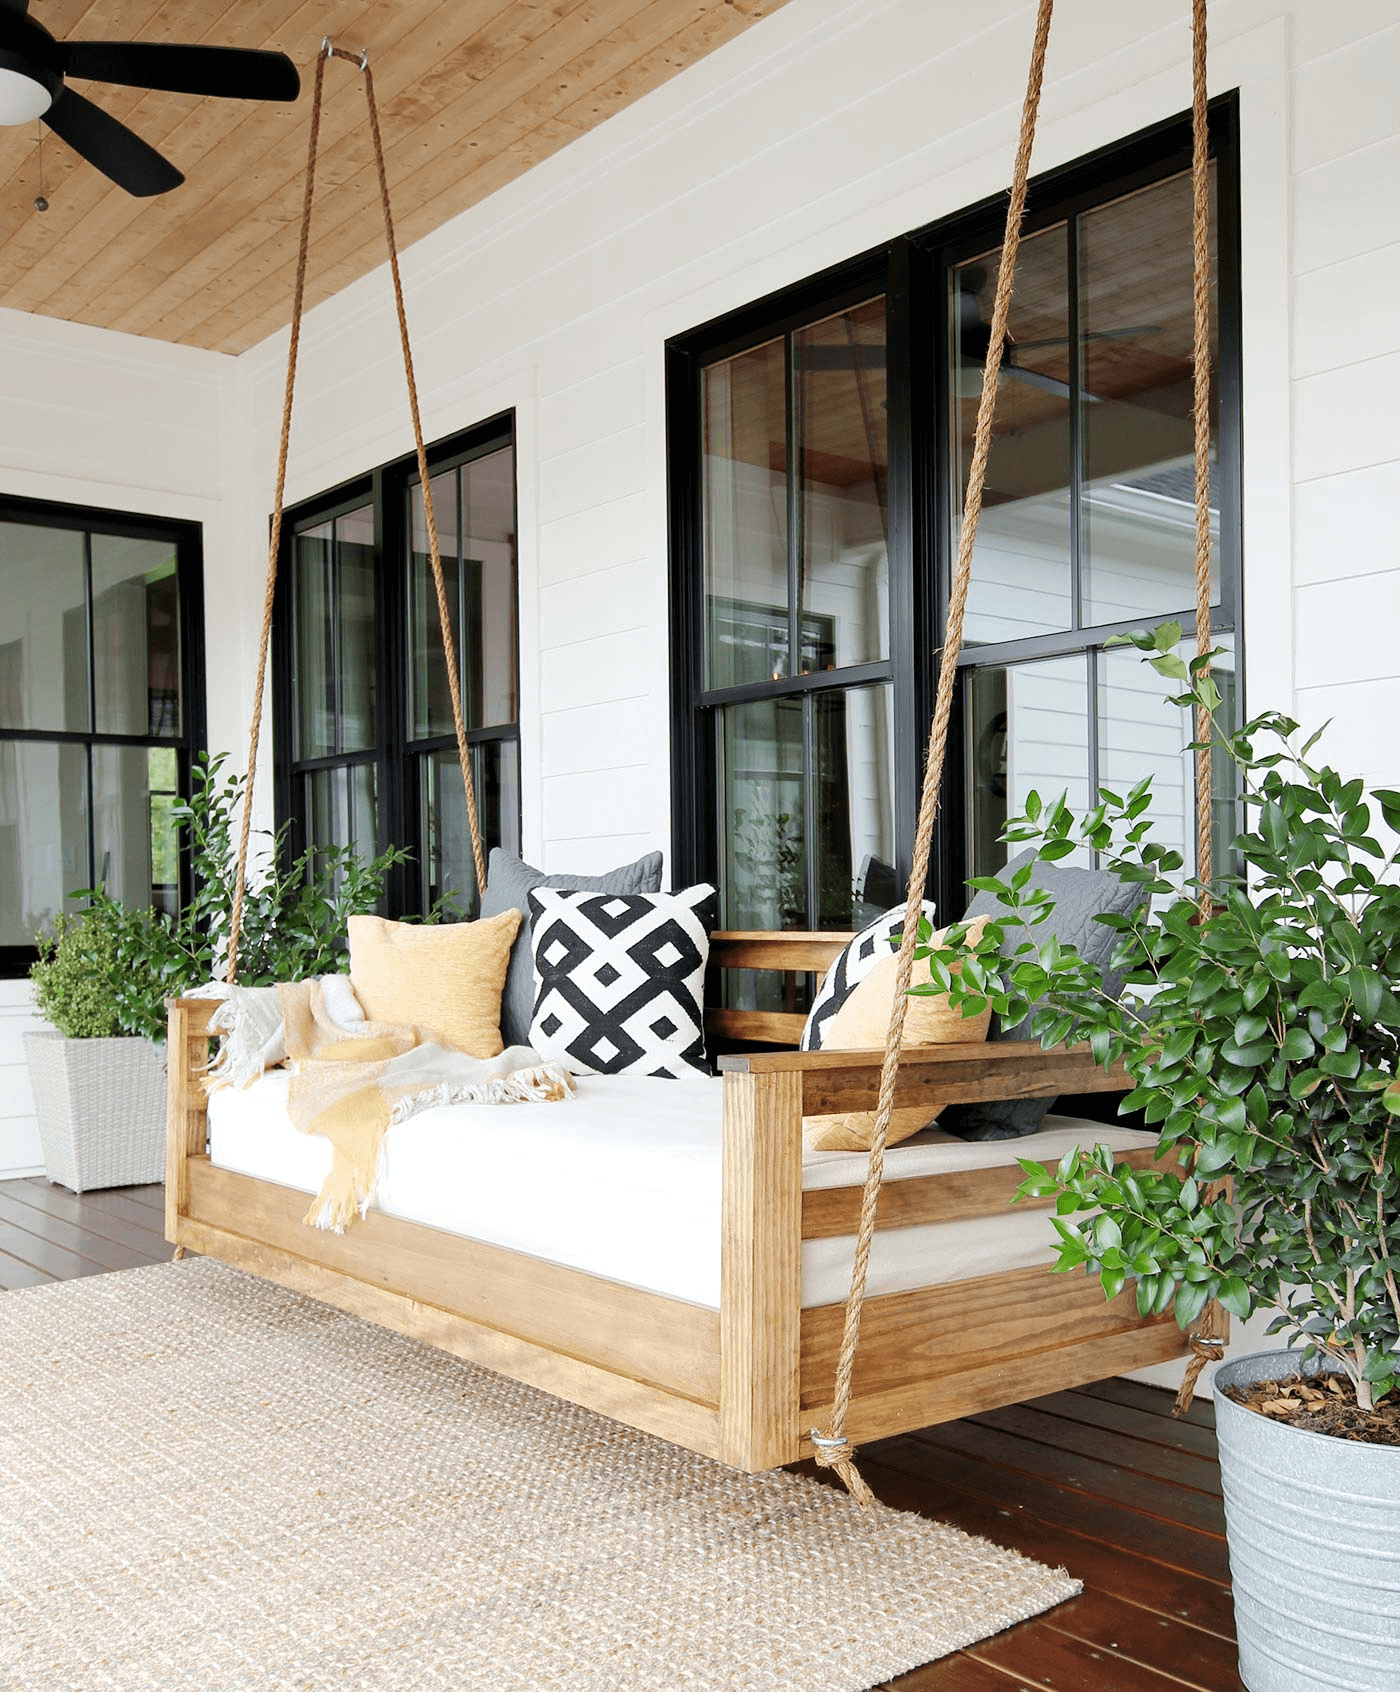 SWING PORCH FURNITURE IDEAS